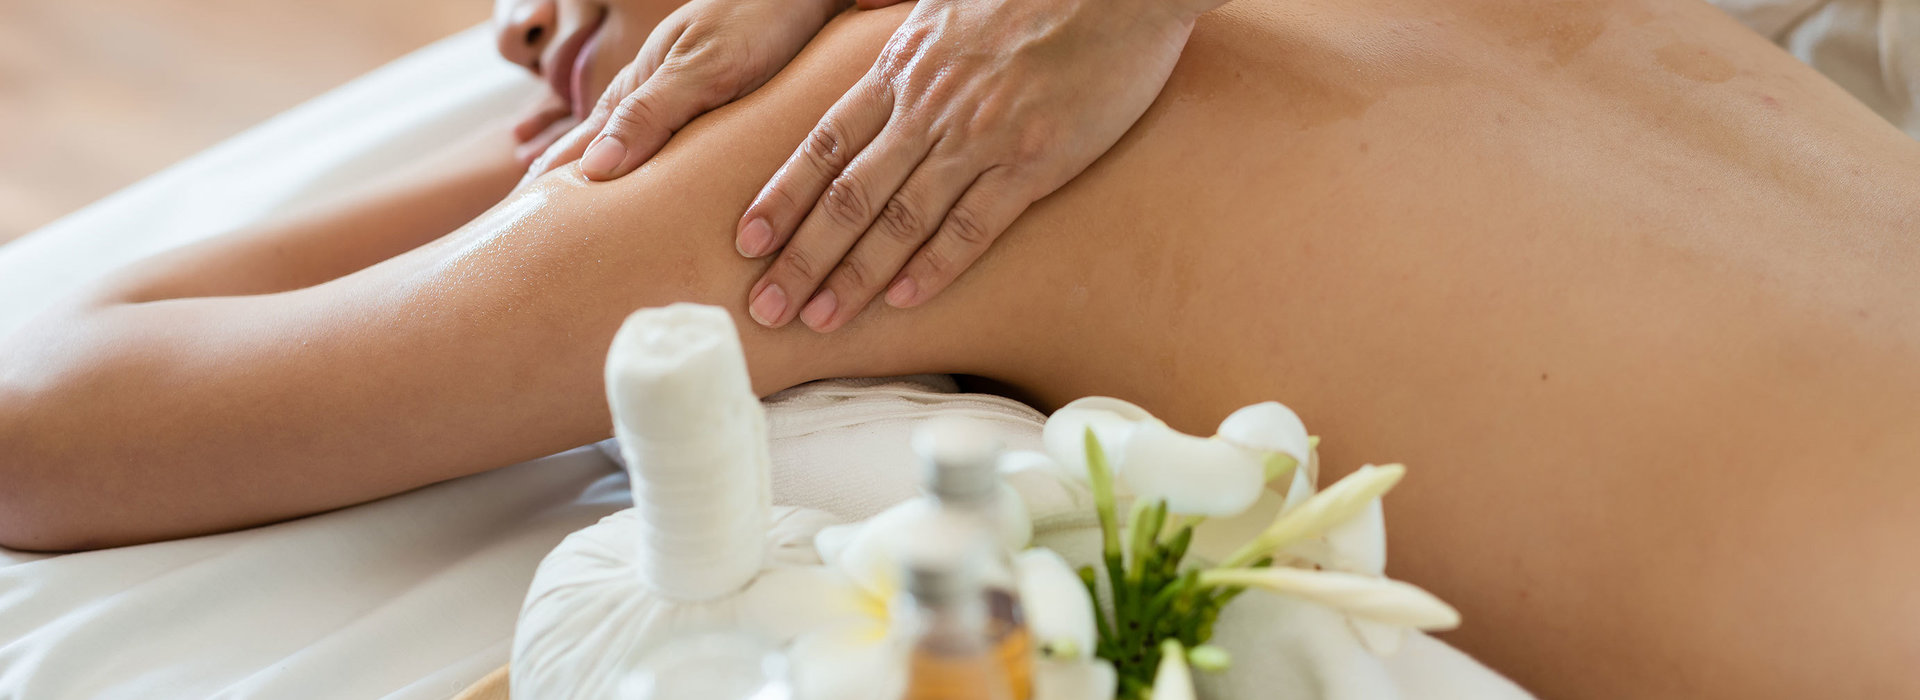 Valentine's Massage Offer: Only £23 for 60 minutes